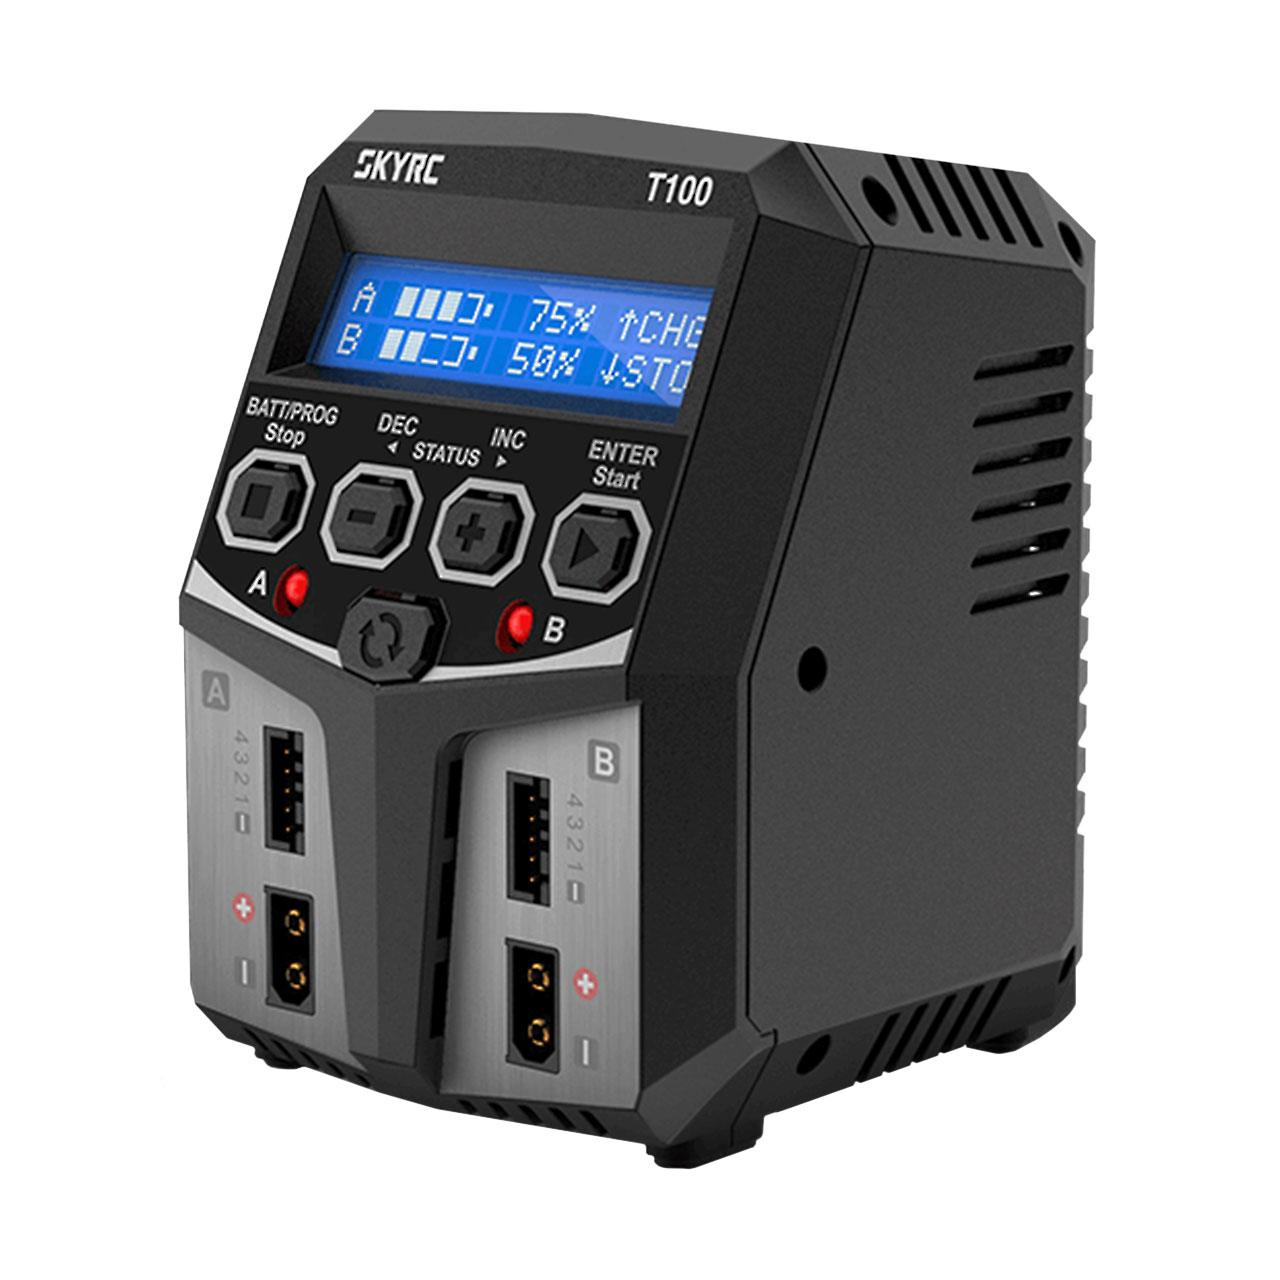 SkyRC T100 AC DUO LiPo 2-4s 5A 2x50W Charger , SK100162